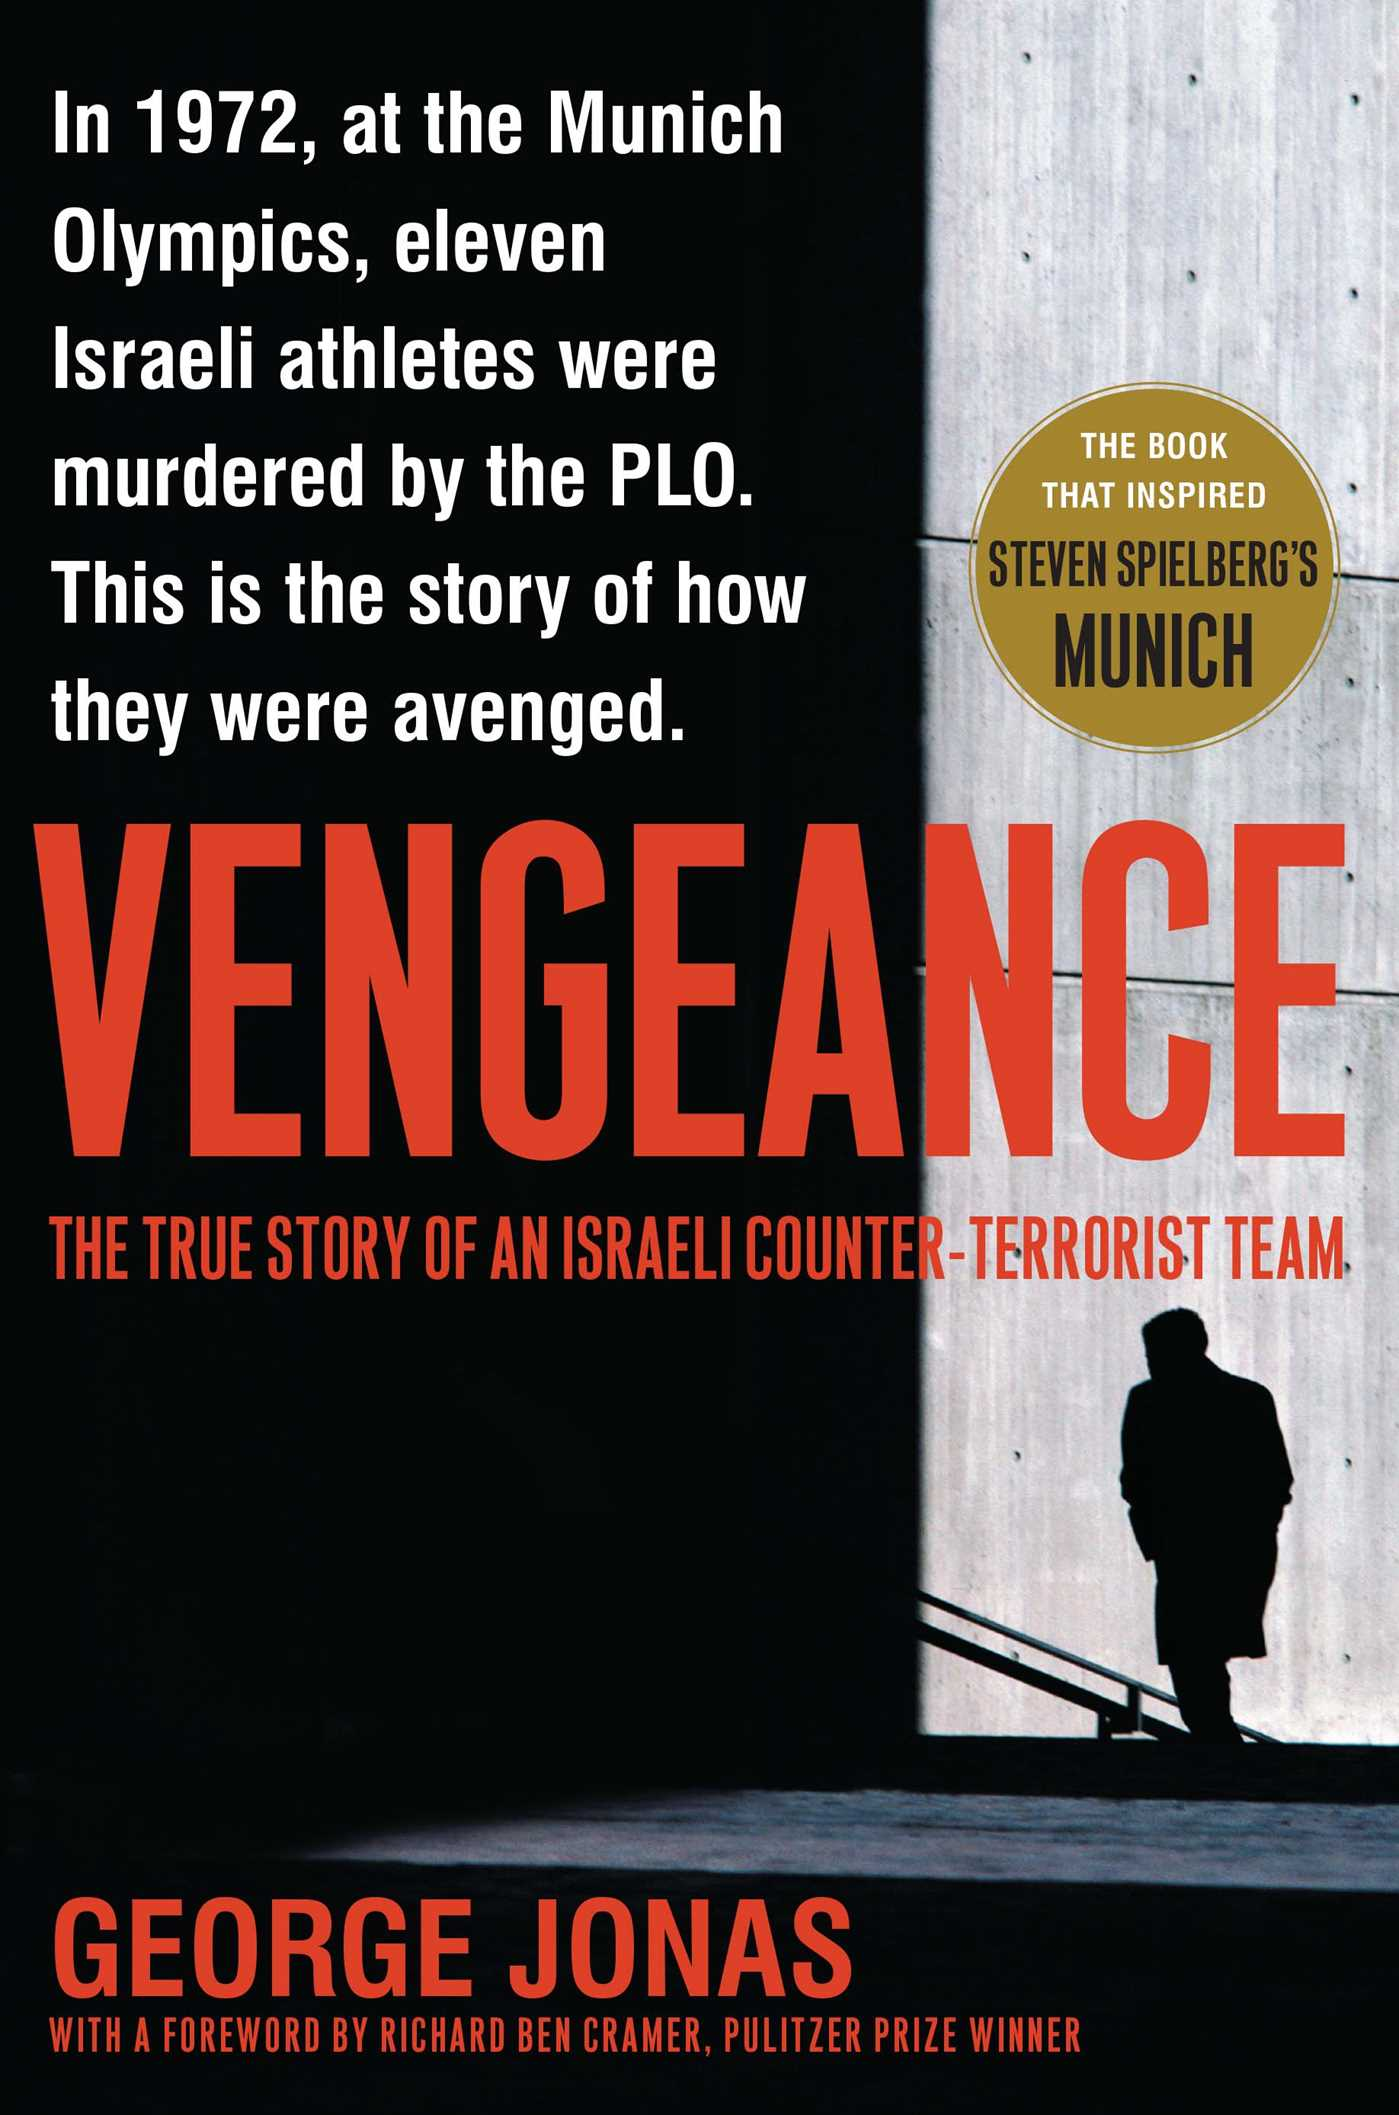 Vengeance-9780743291644_hr